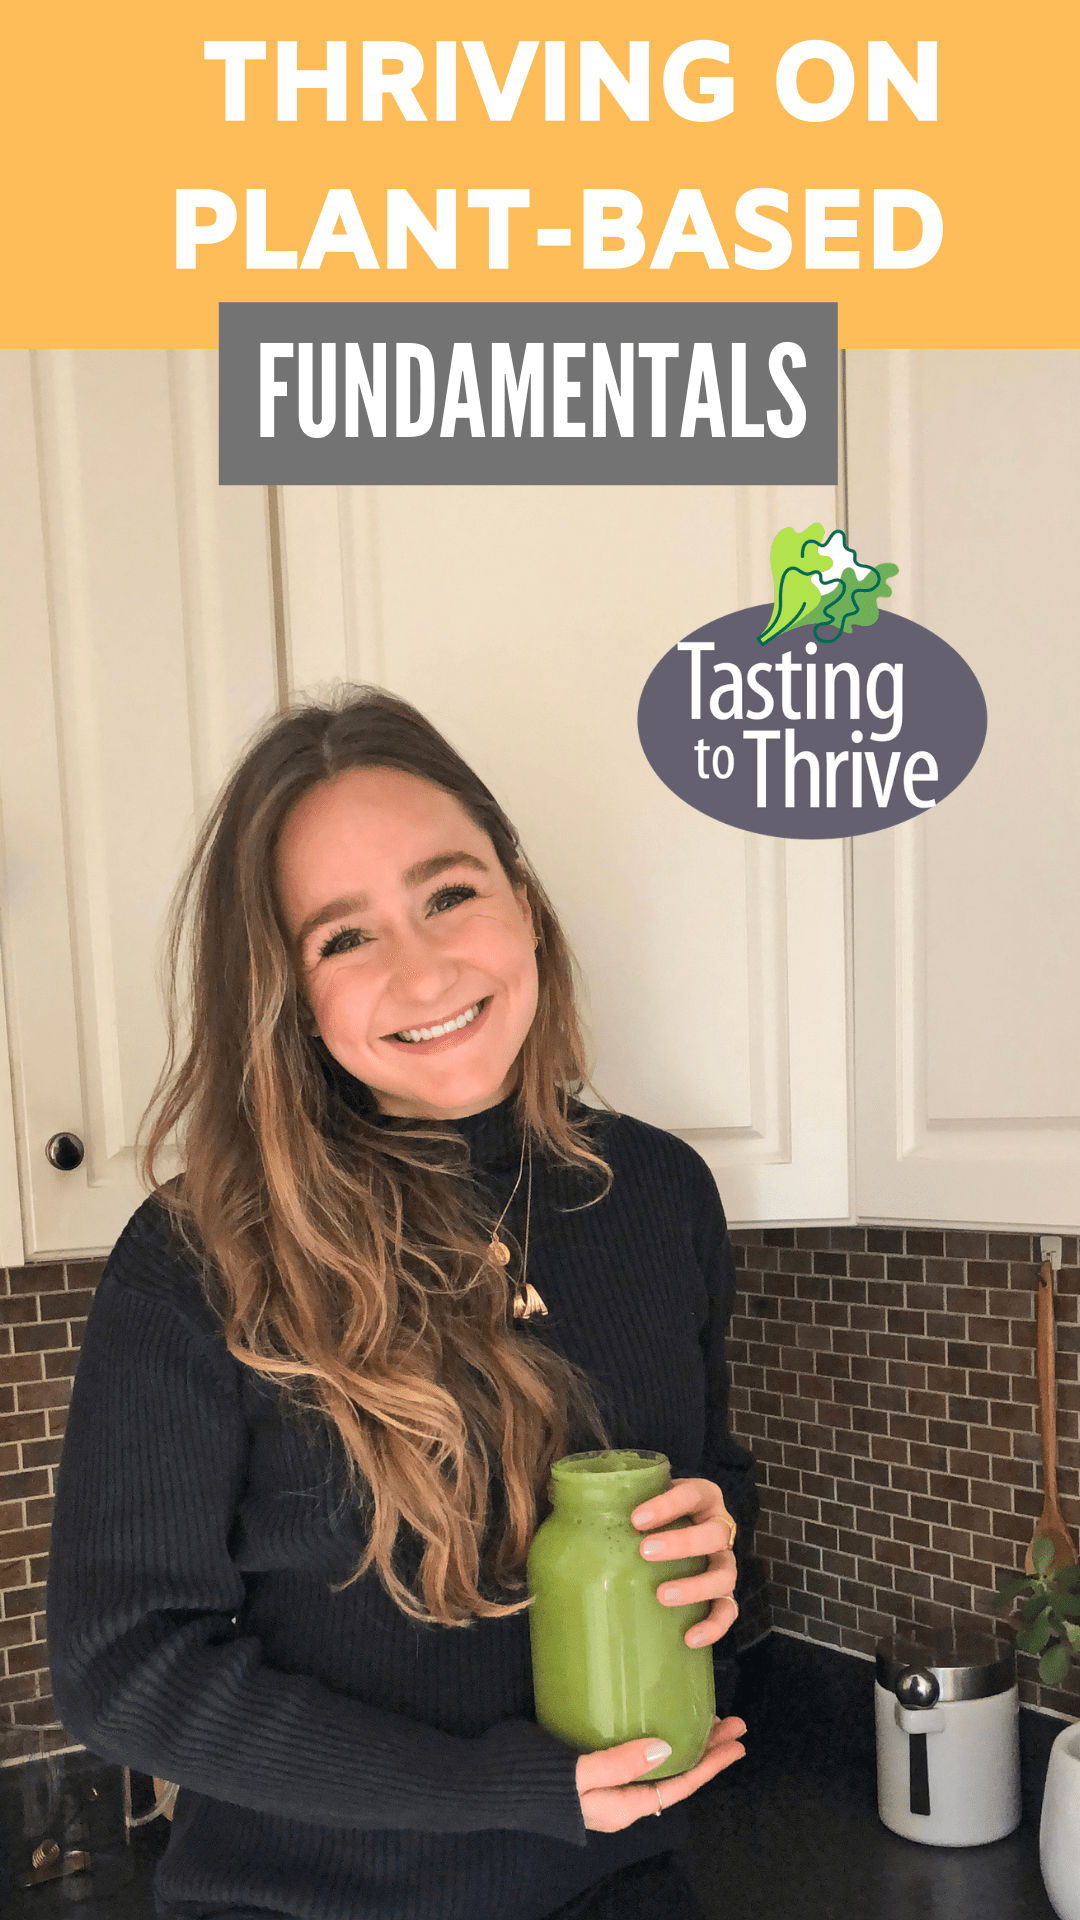 Copy of THRIVING ON PLANT-BASED FUNDAMENTALS